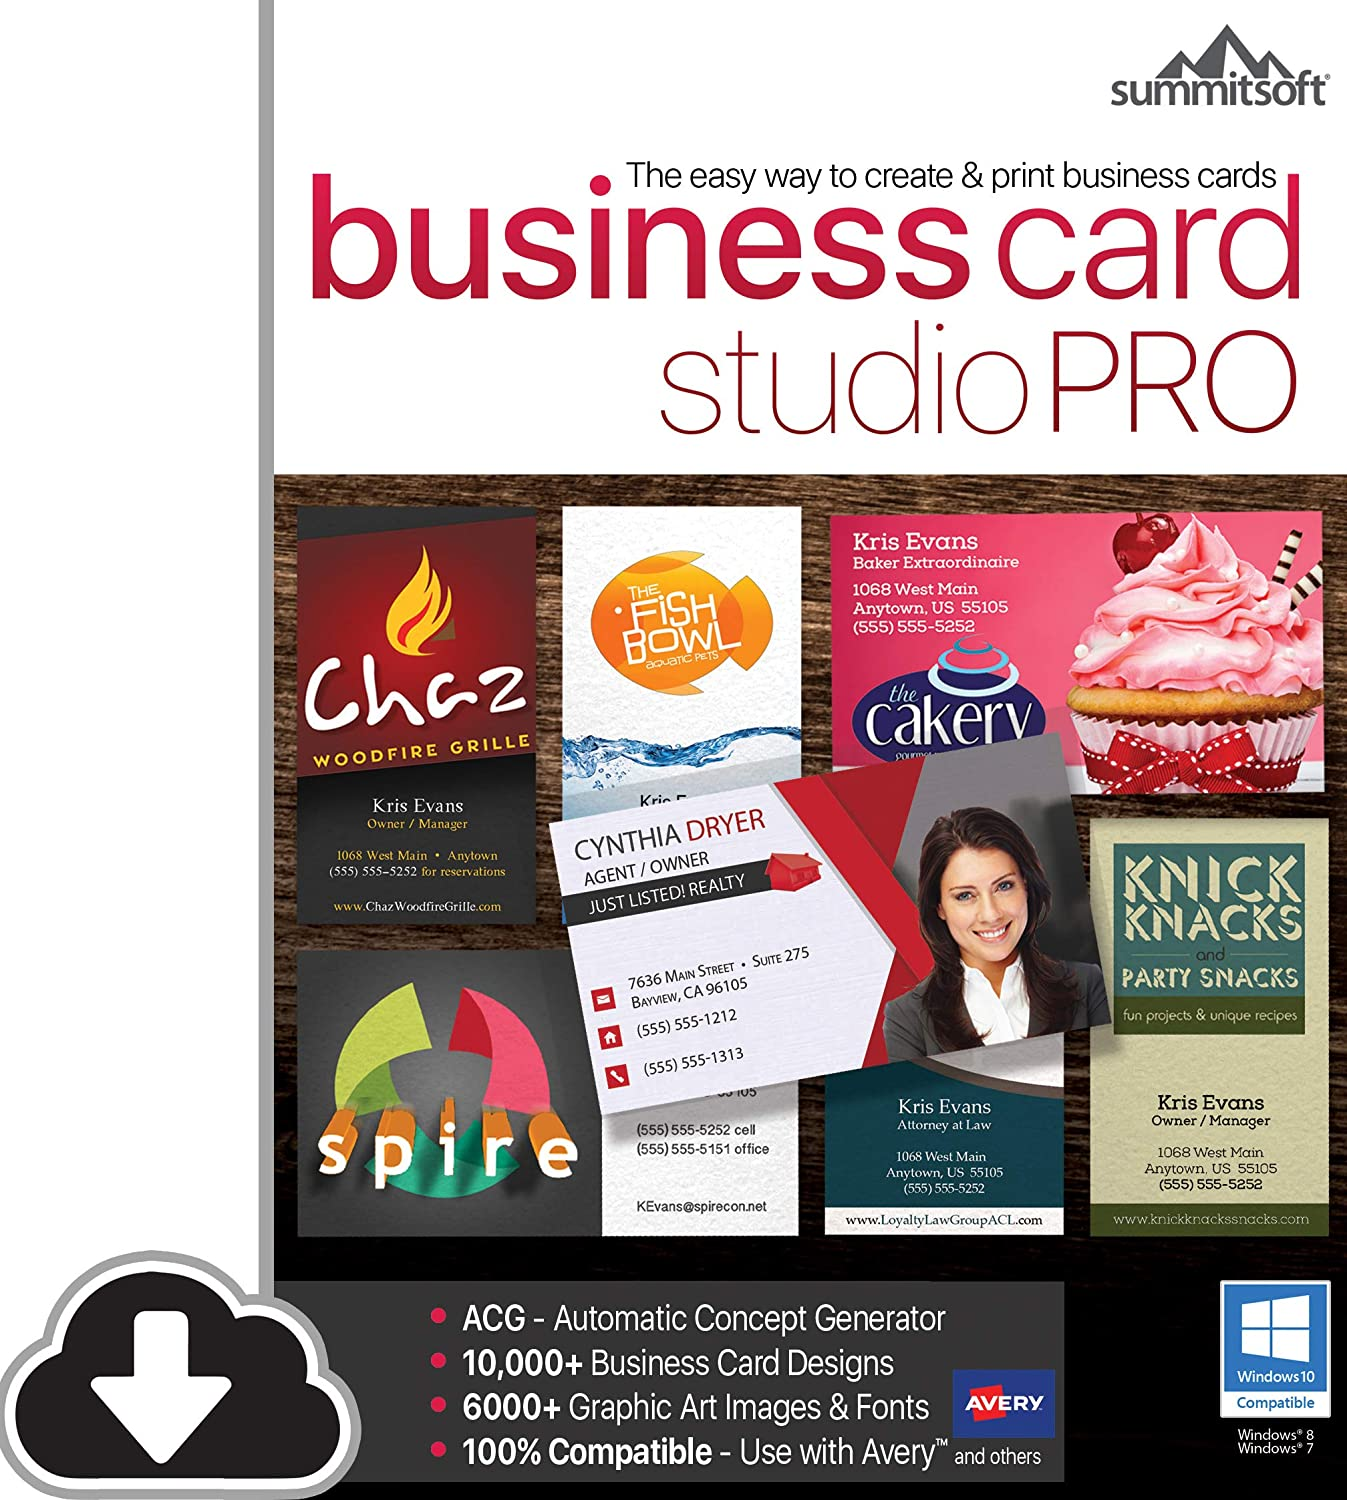 Business Card Studio Pro [PC Download] 81dm8hryXeL